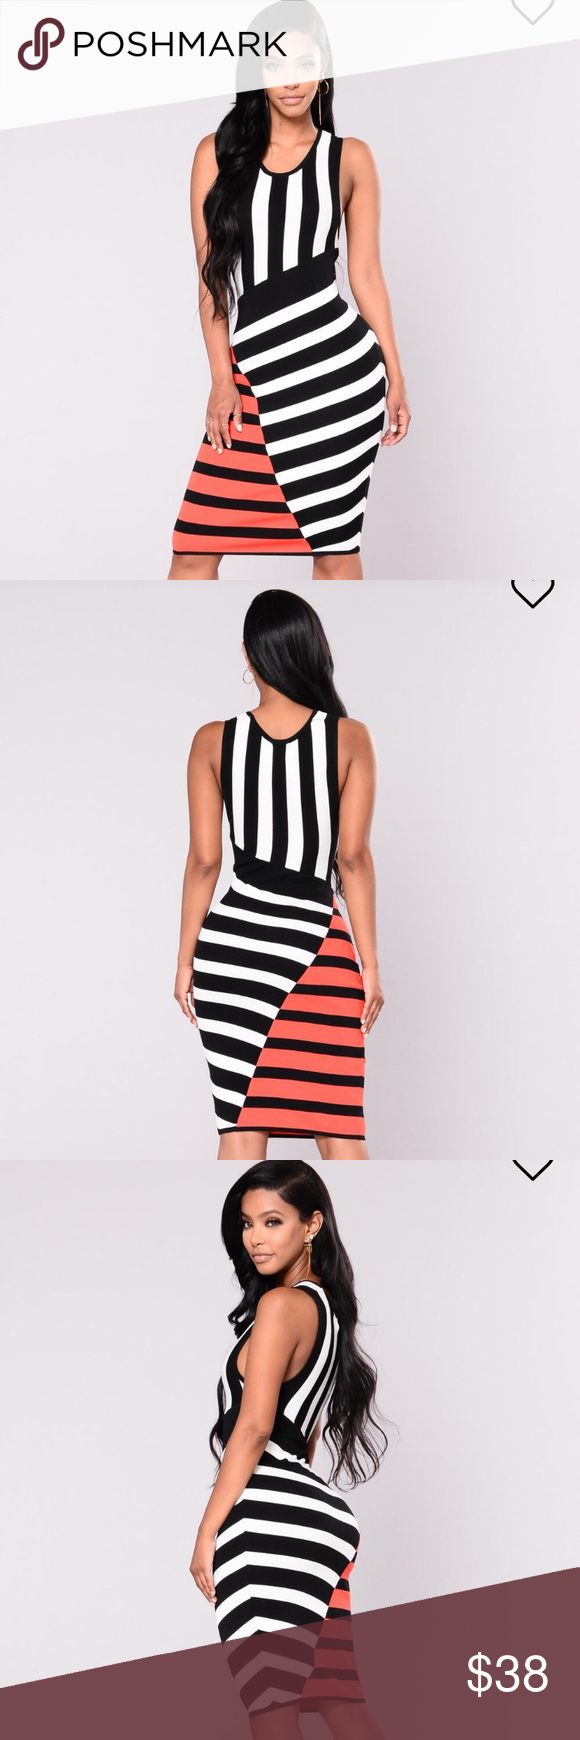 7d6d5968cce Black And White Striped Dress Fashion Nova - Data Dynamic AG